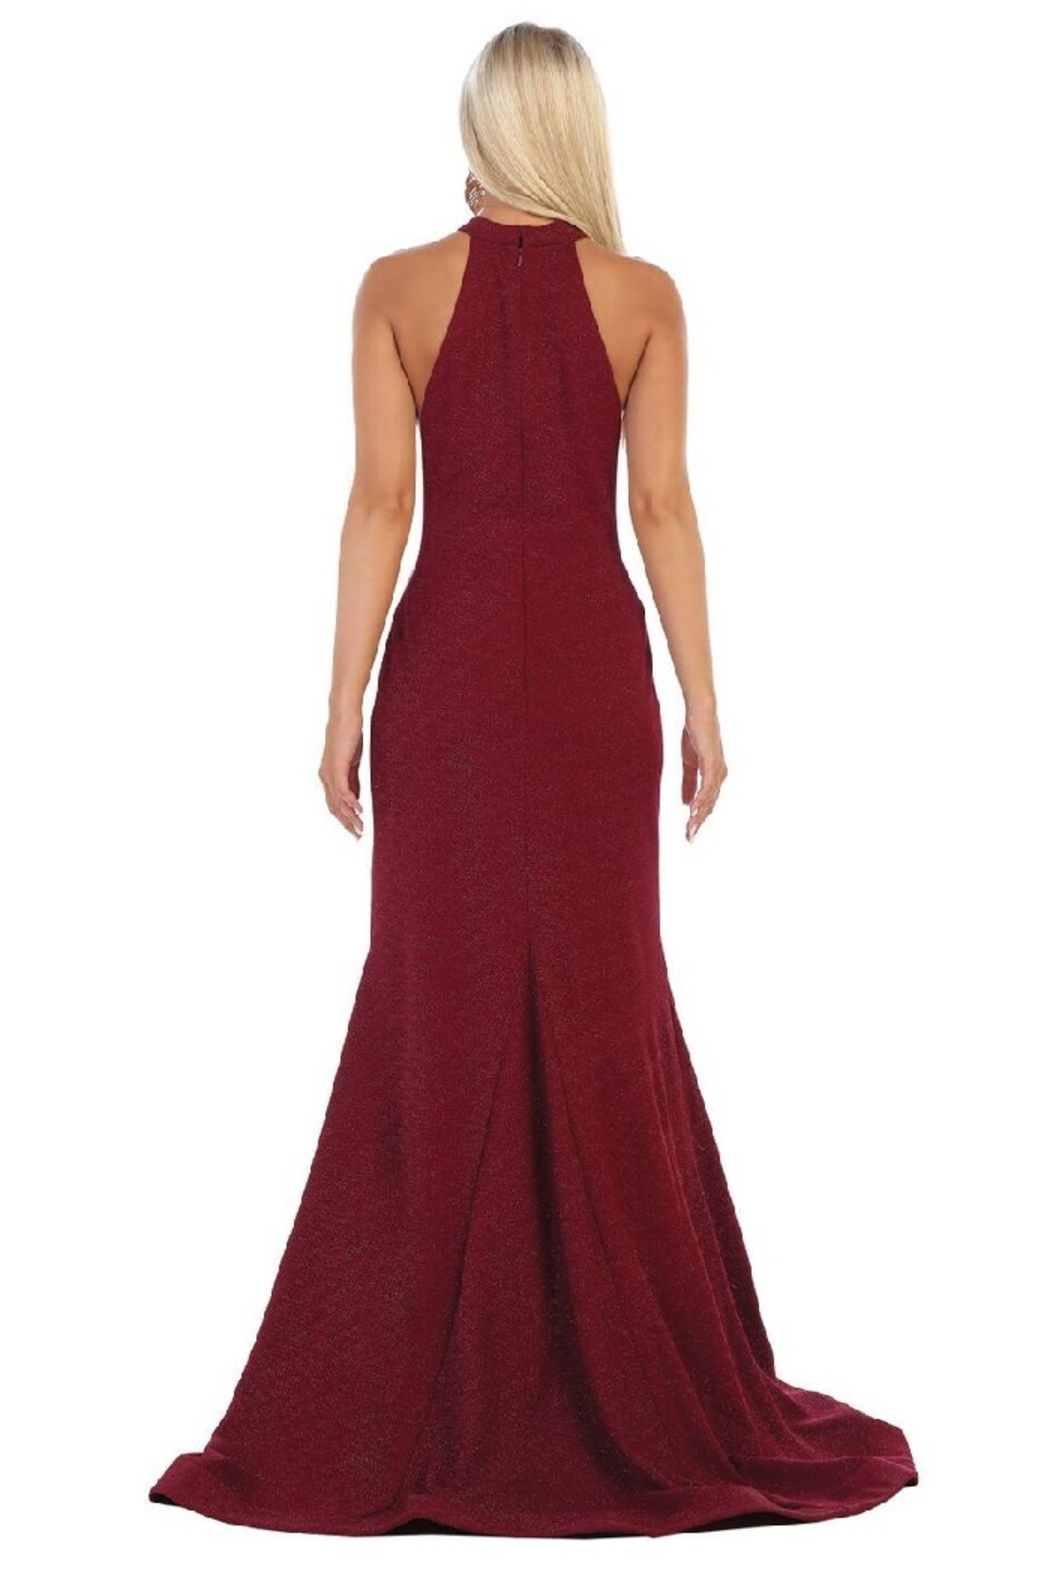 May Queen  Burgundy Halter Fit & Flare Formal Long Dress - Front Full Image